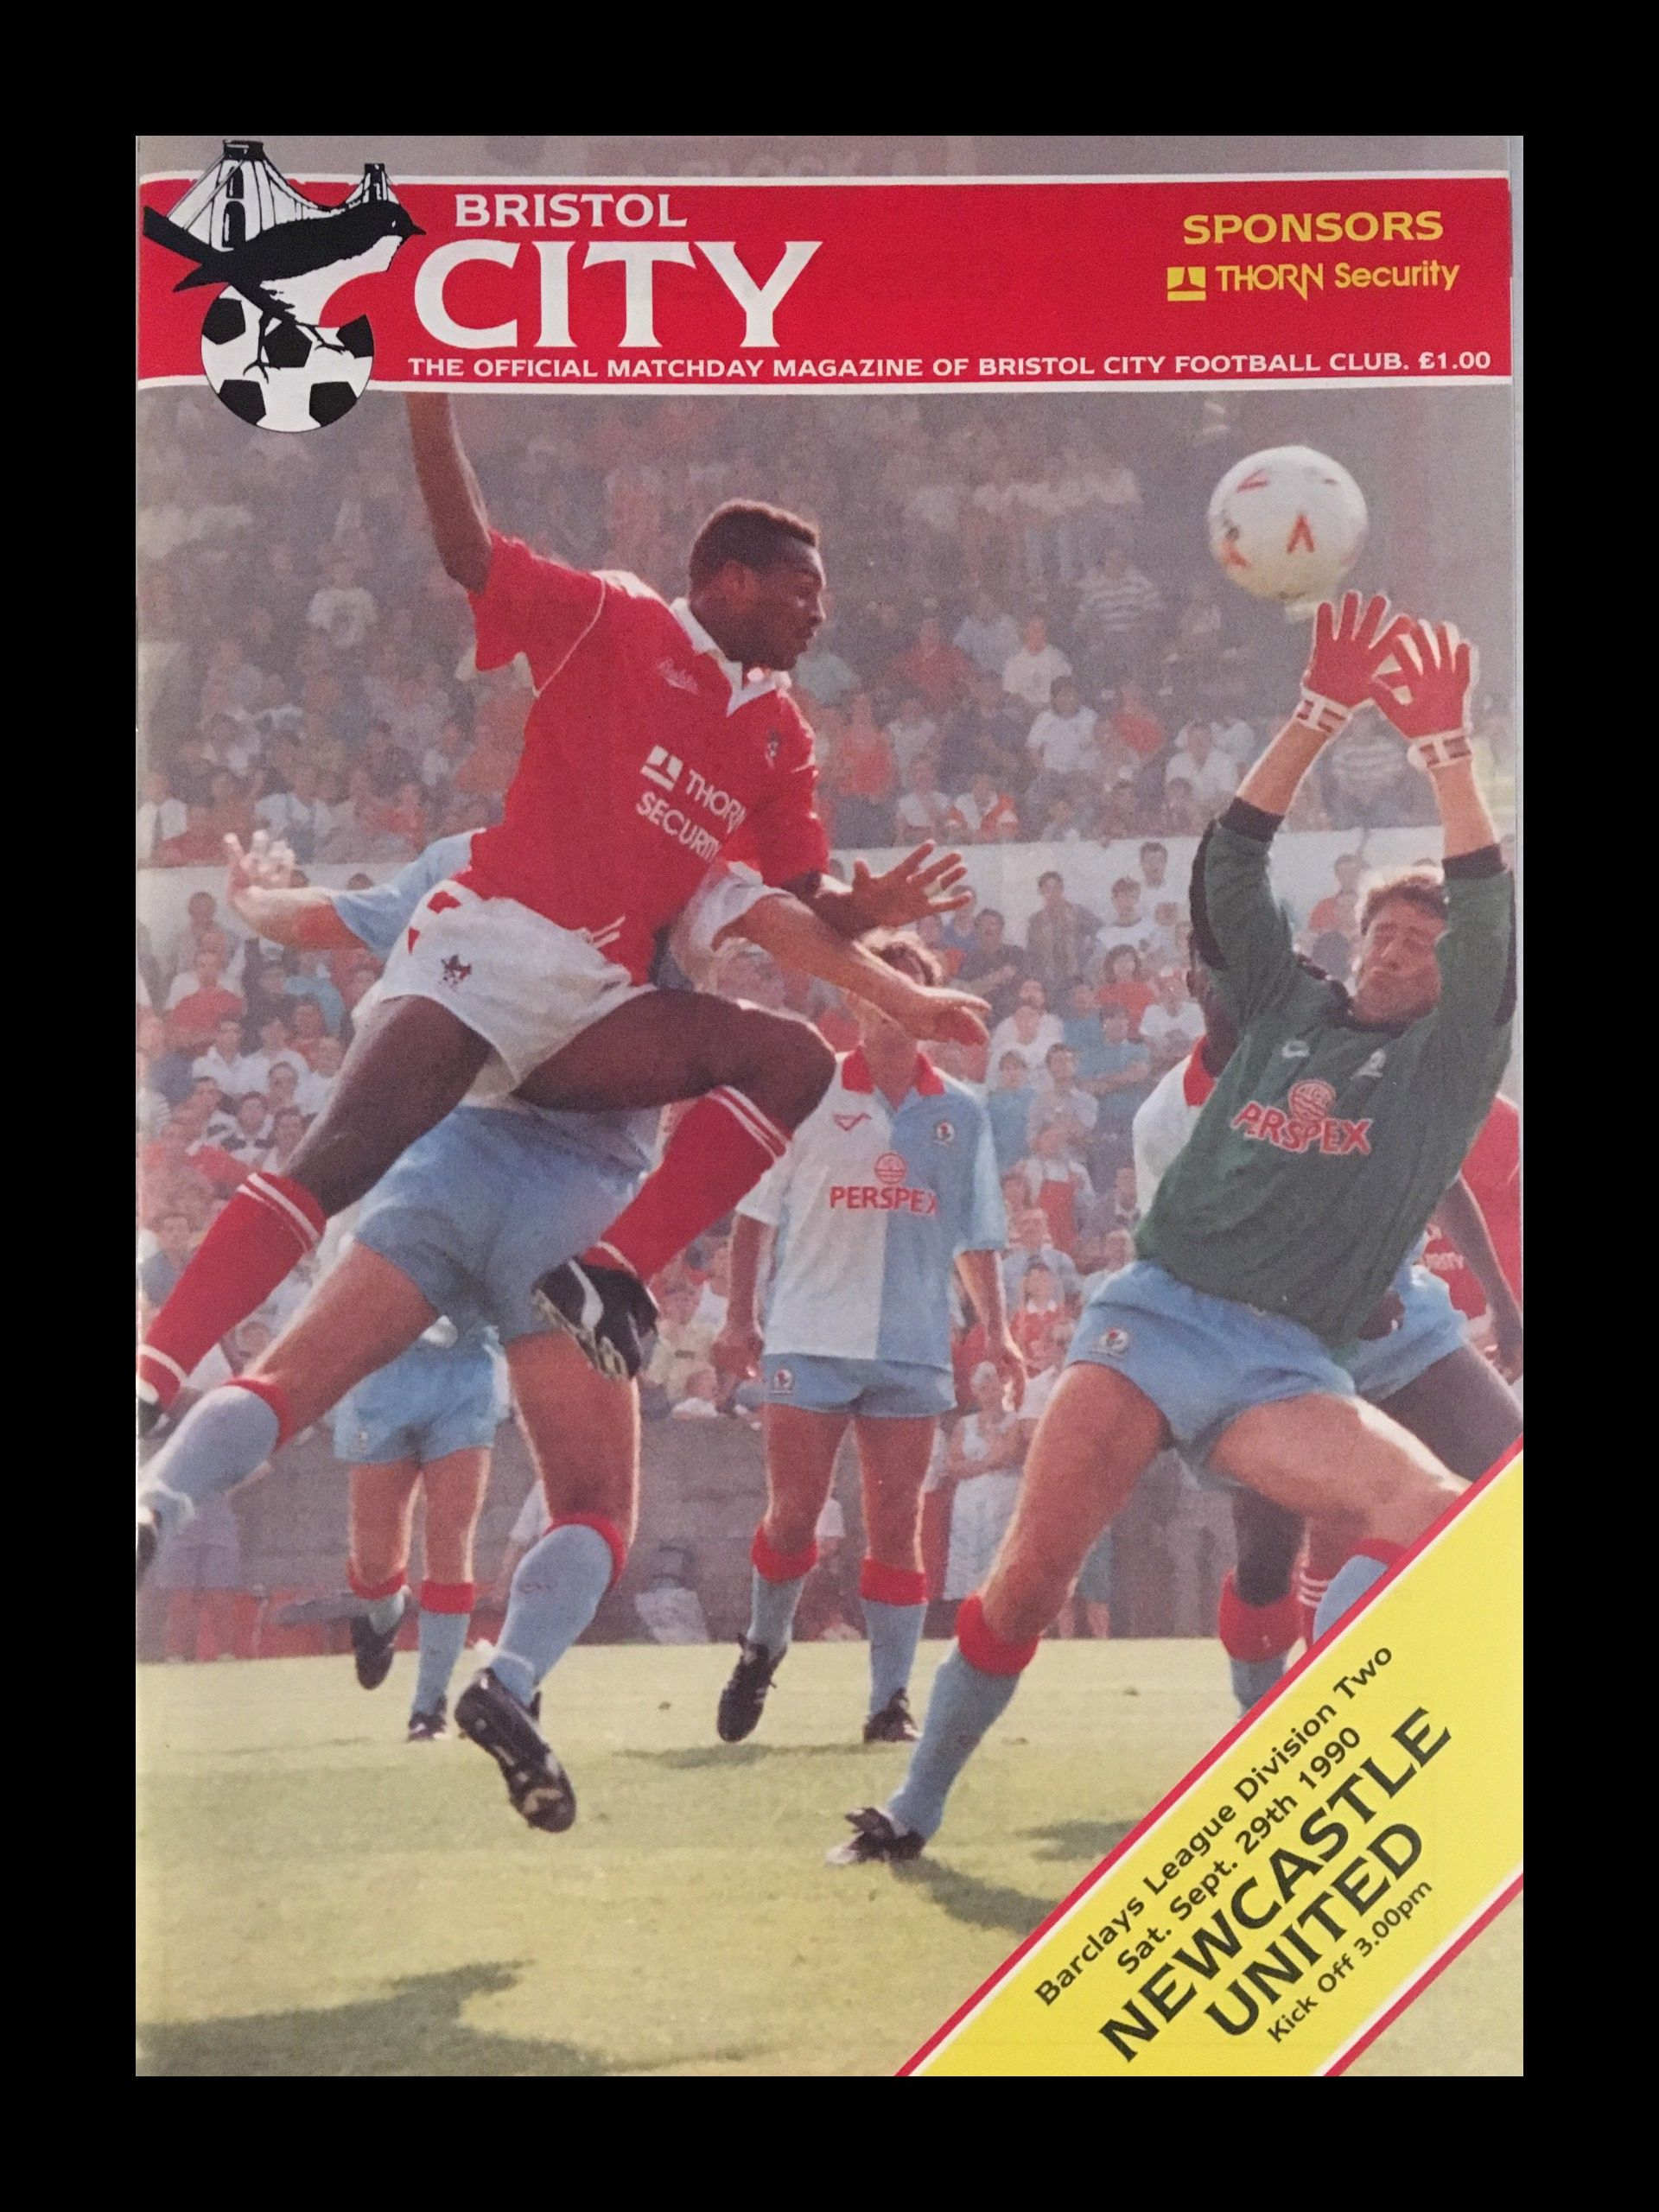 Bristol City v Newcastle United 29-09-1990 Programme